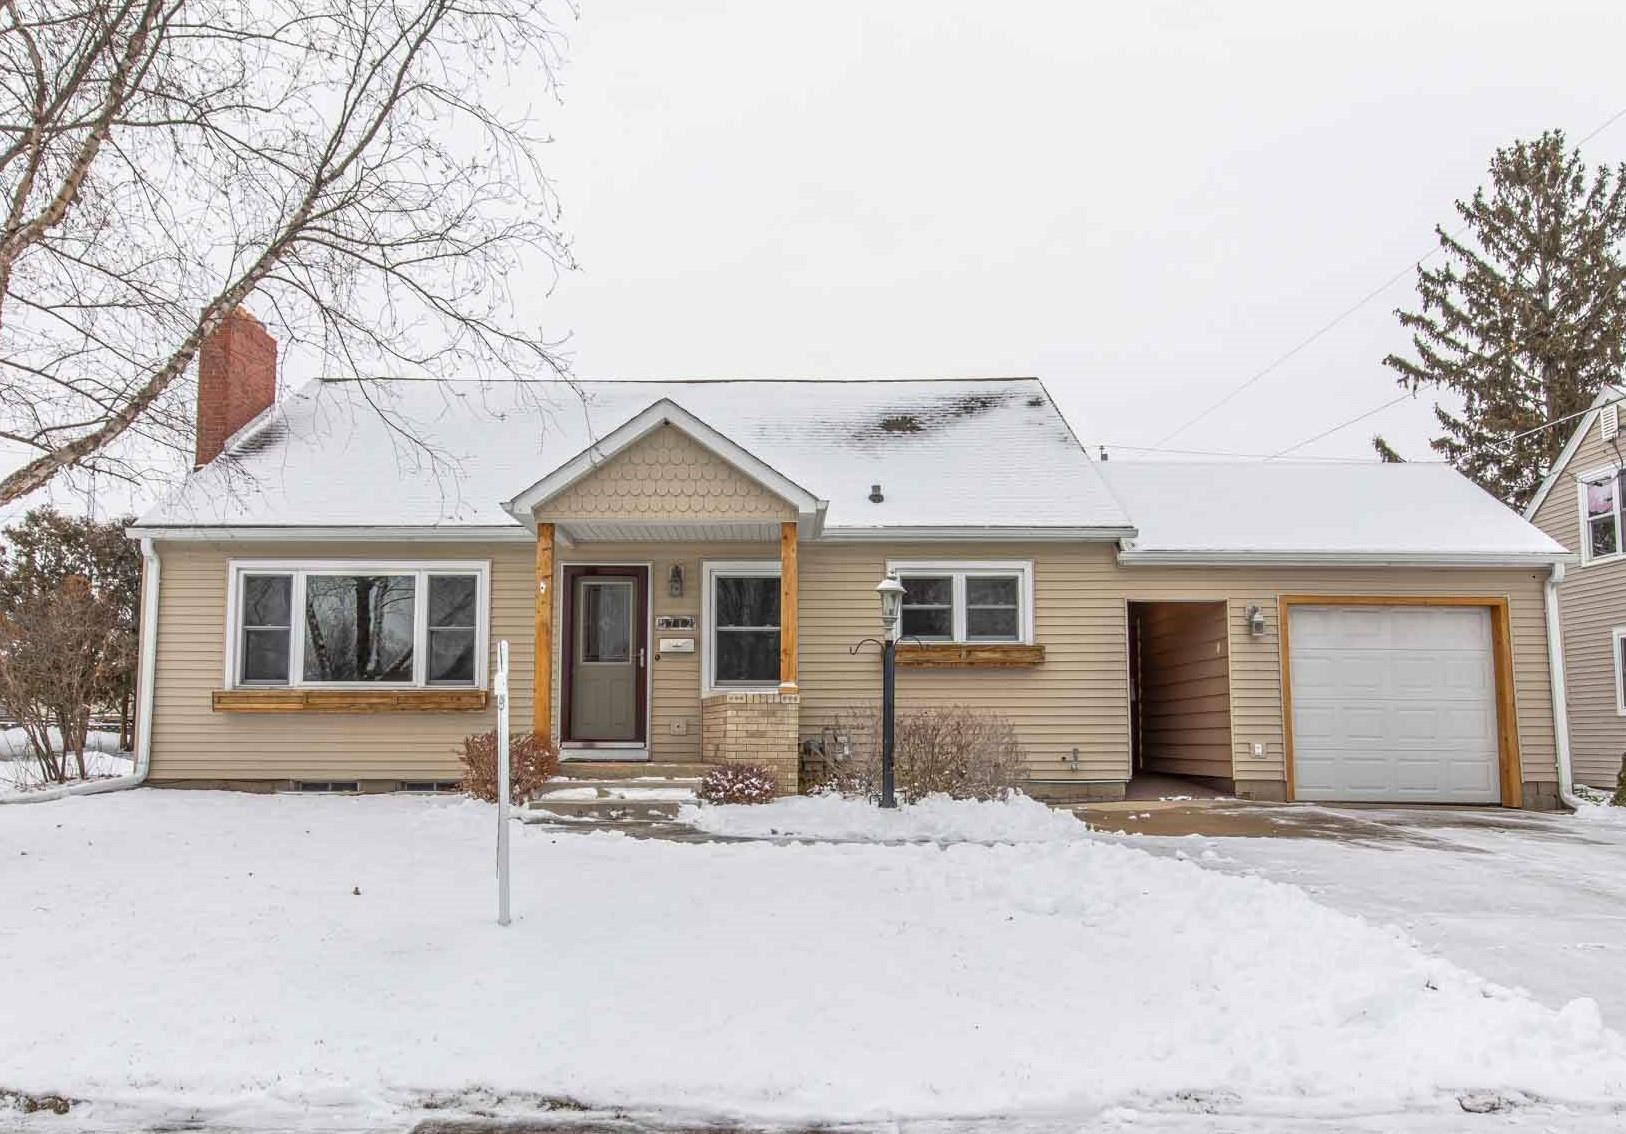 712 27th Ave, Monroe, WI 53566 - #: 1920912